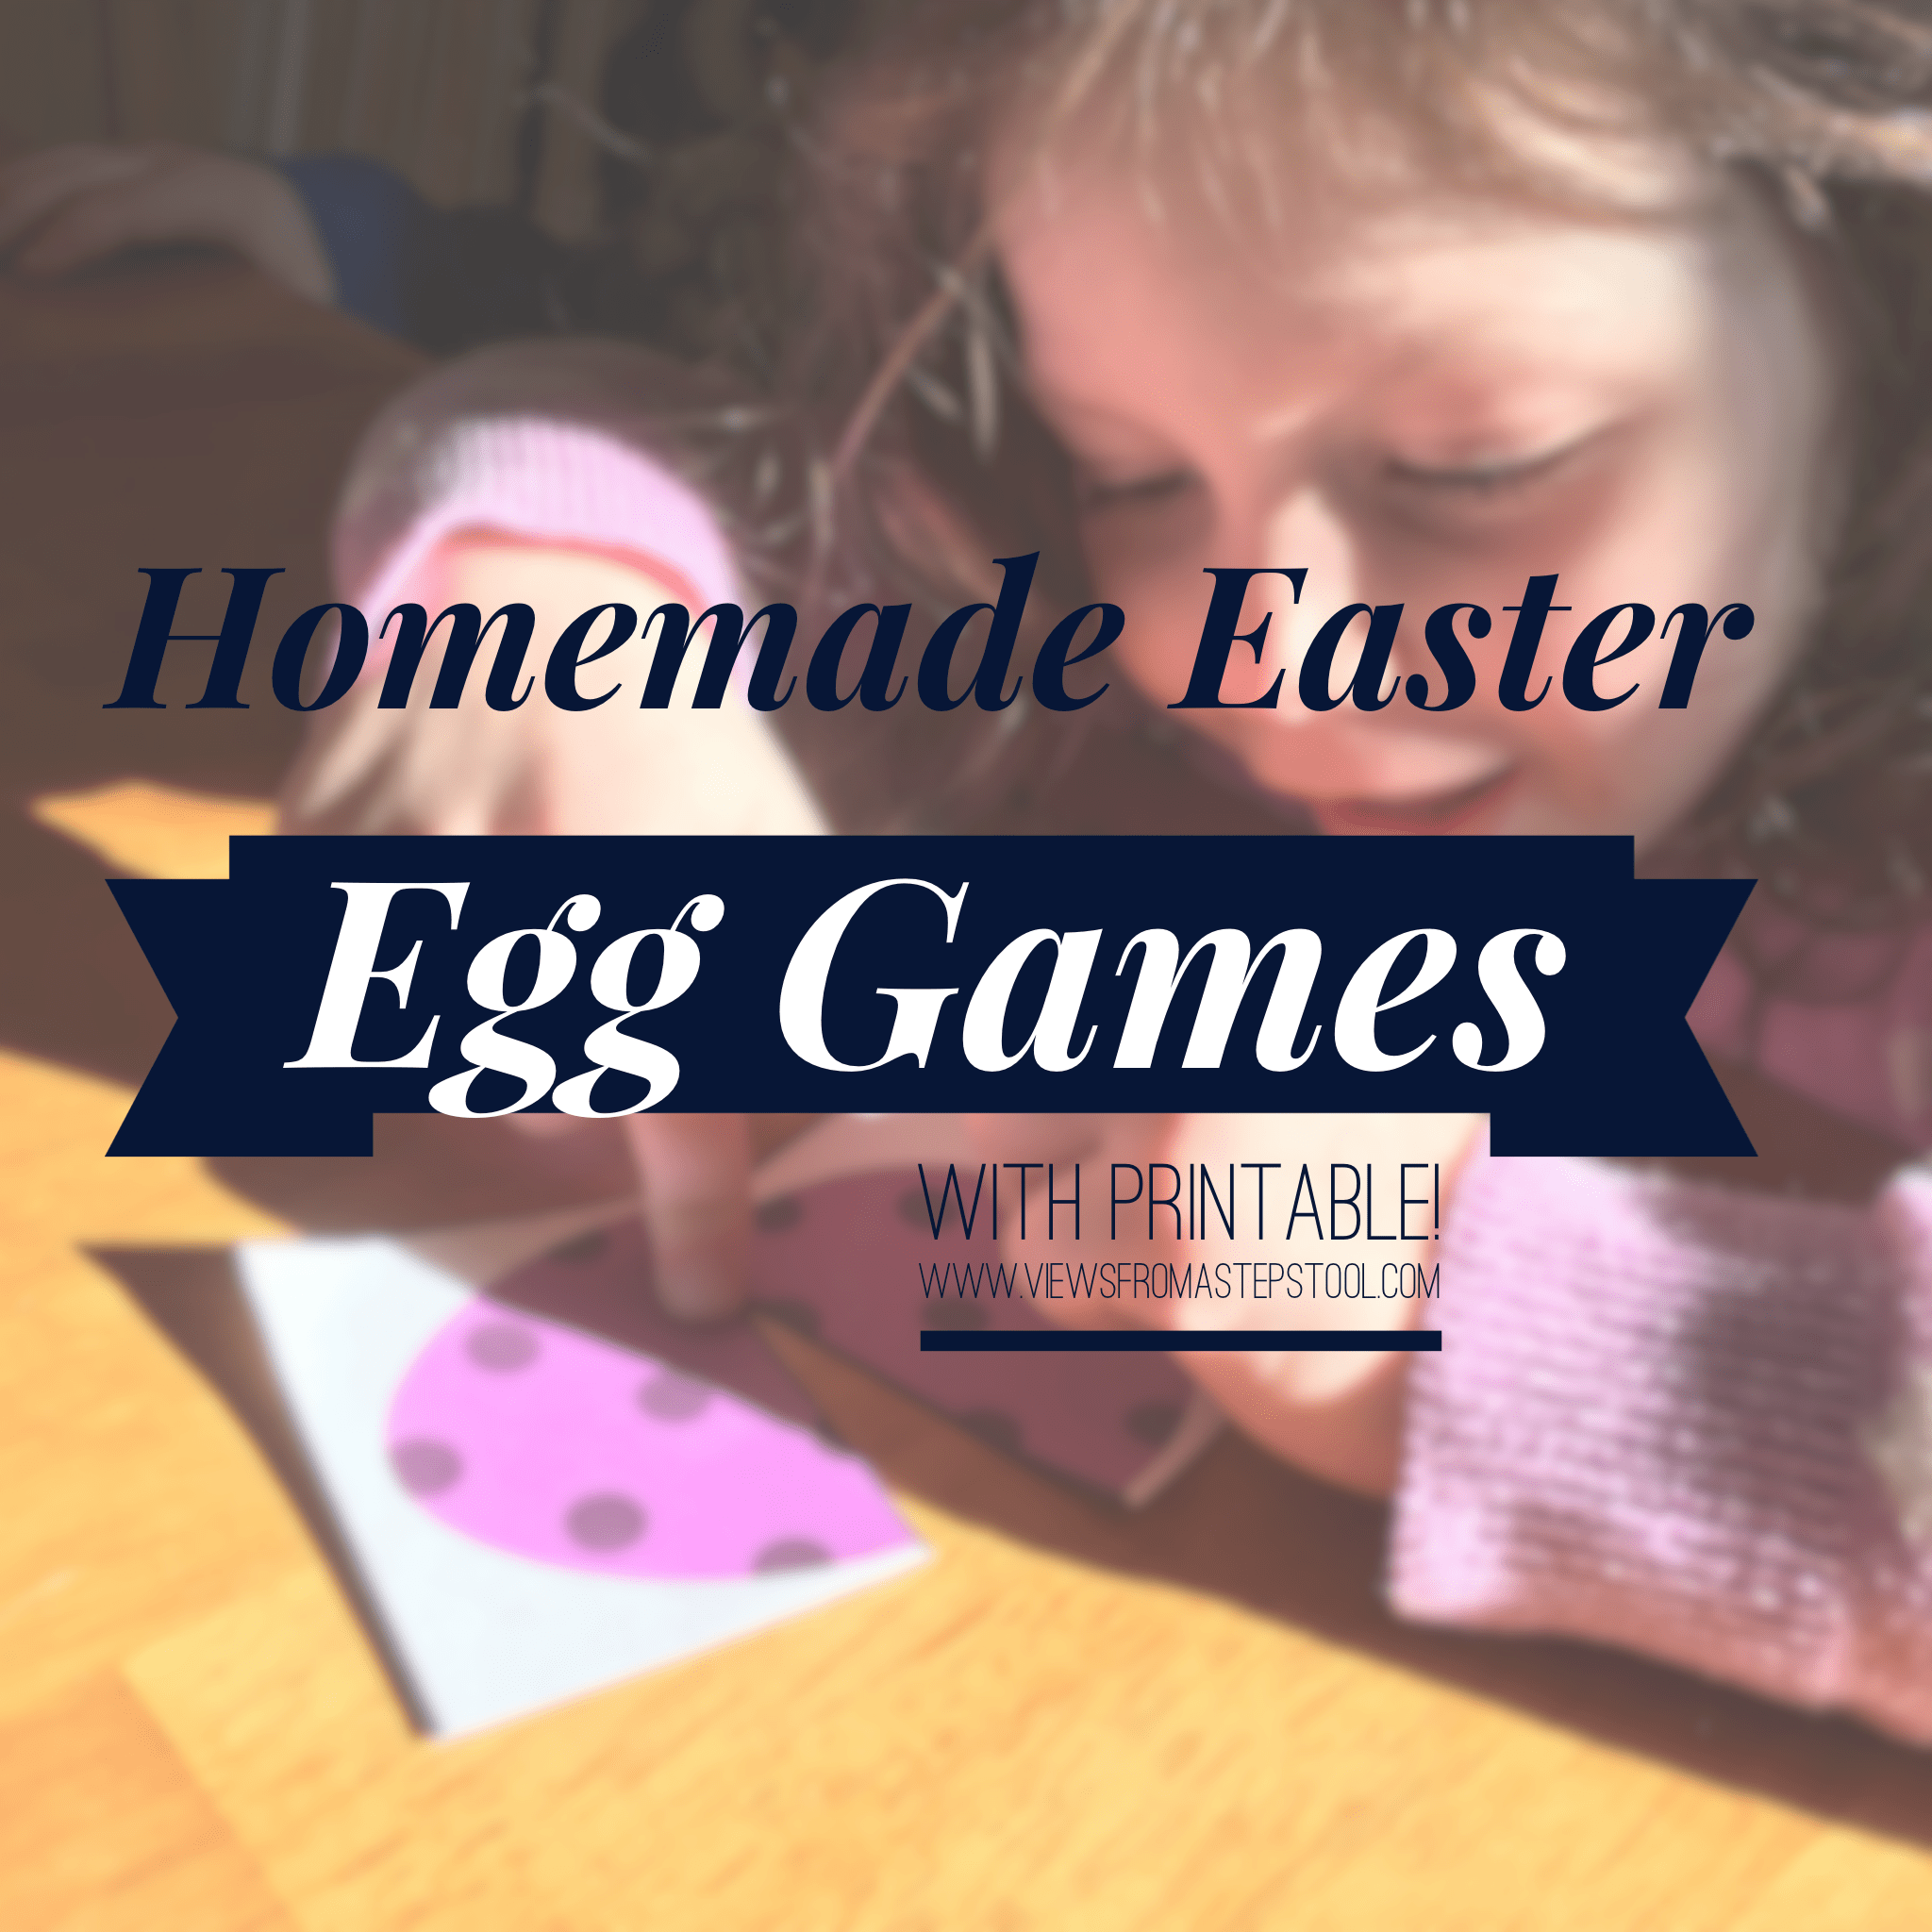 Find many ways to play with this printable! We will definitely be using these for our busy bags when we travel for Easter! In the meantime, my toddler loves playing memory with these eggs!